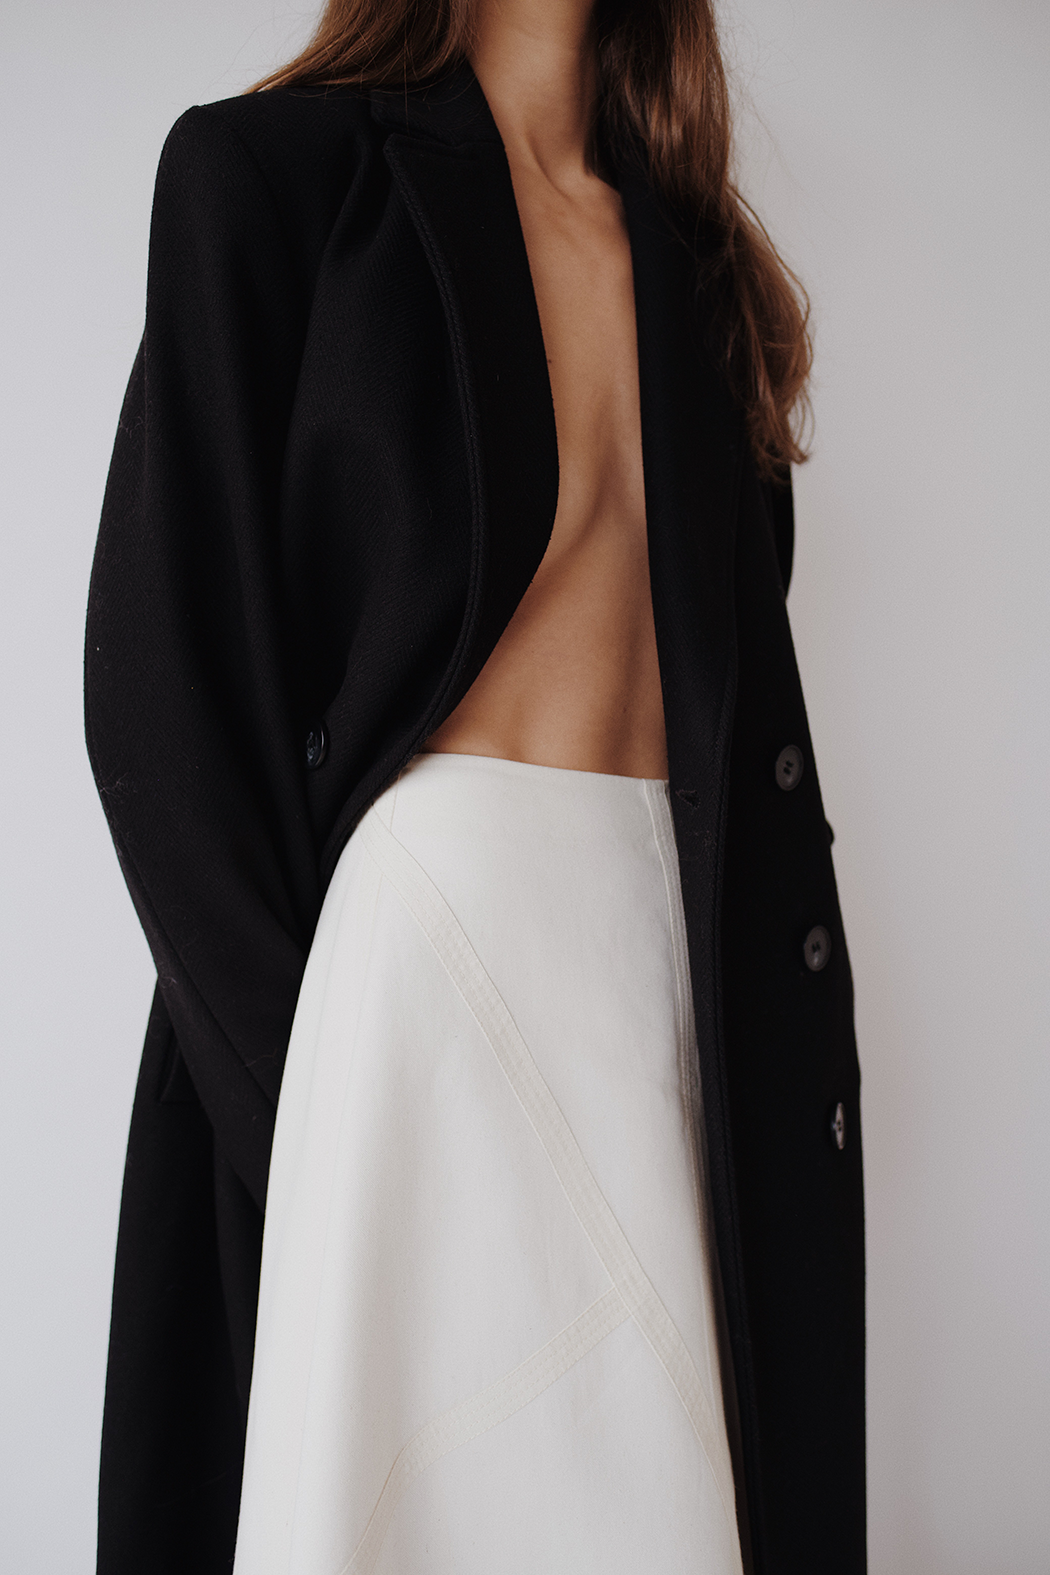 Monochrome in 2020 Long black coat, Black coat, Zara leather